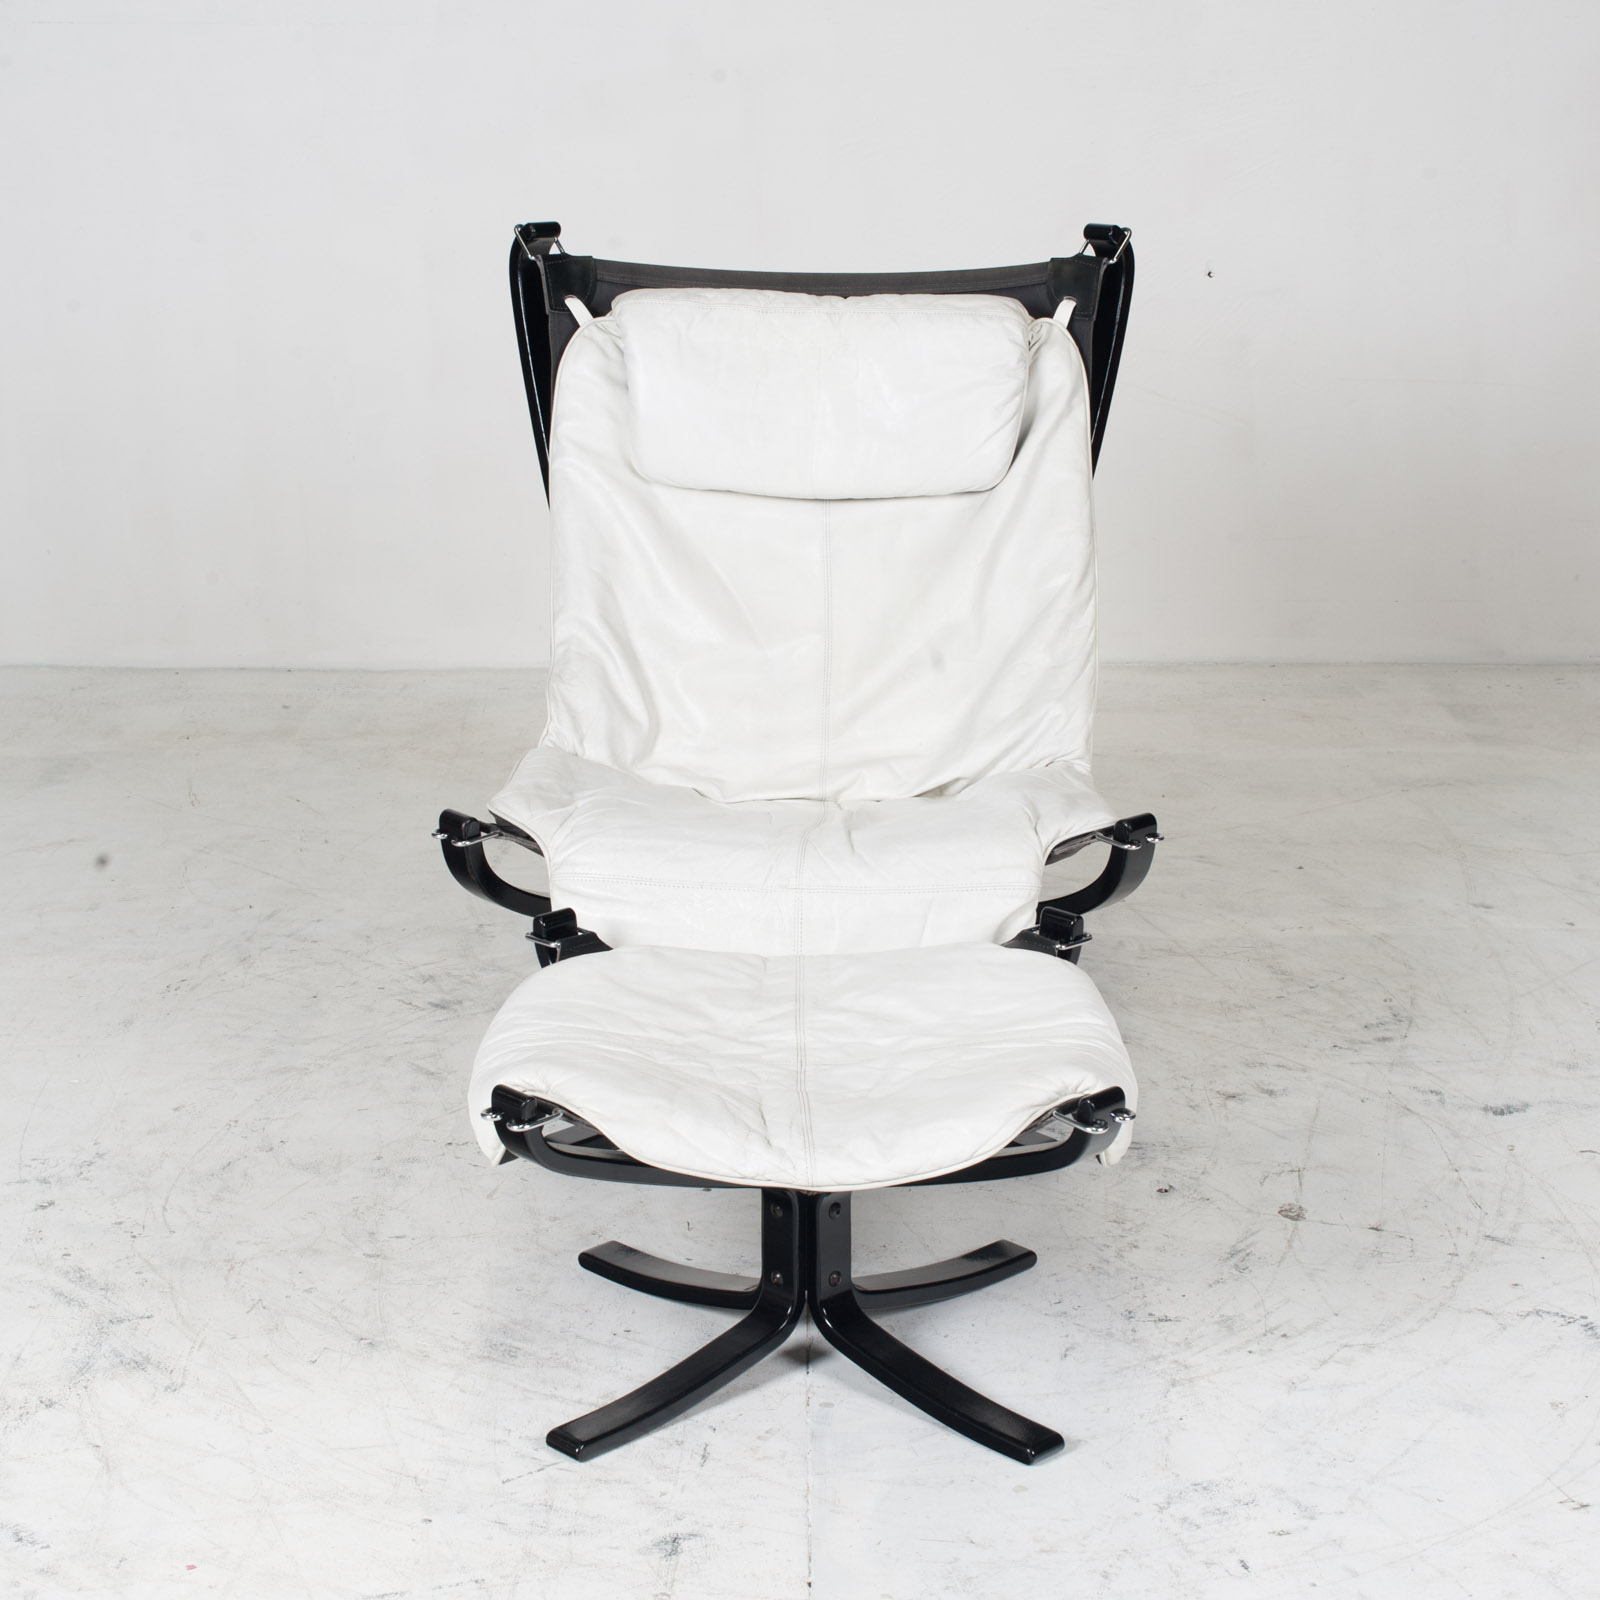 High Back Falcon Armchair By Sigurd Ressell For Vatne Mobler In Patinated White Leather With Footstool 1970s Norway 02